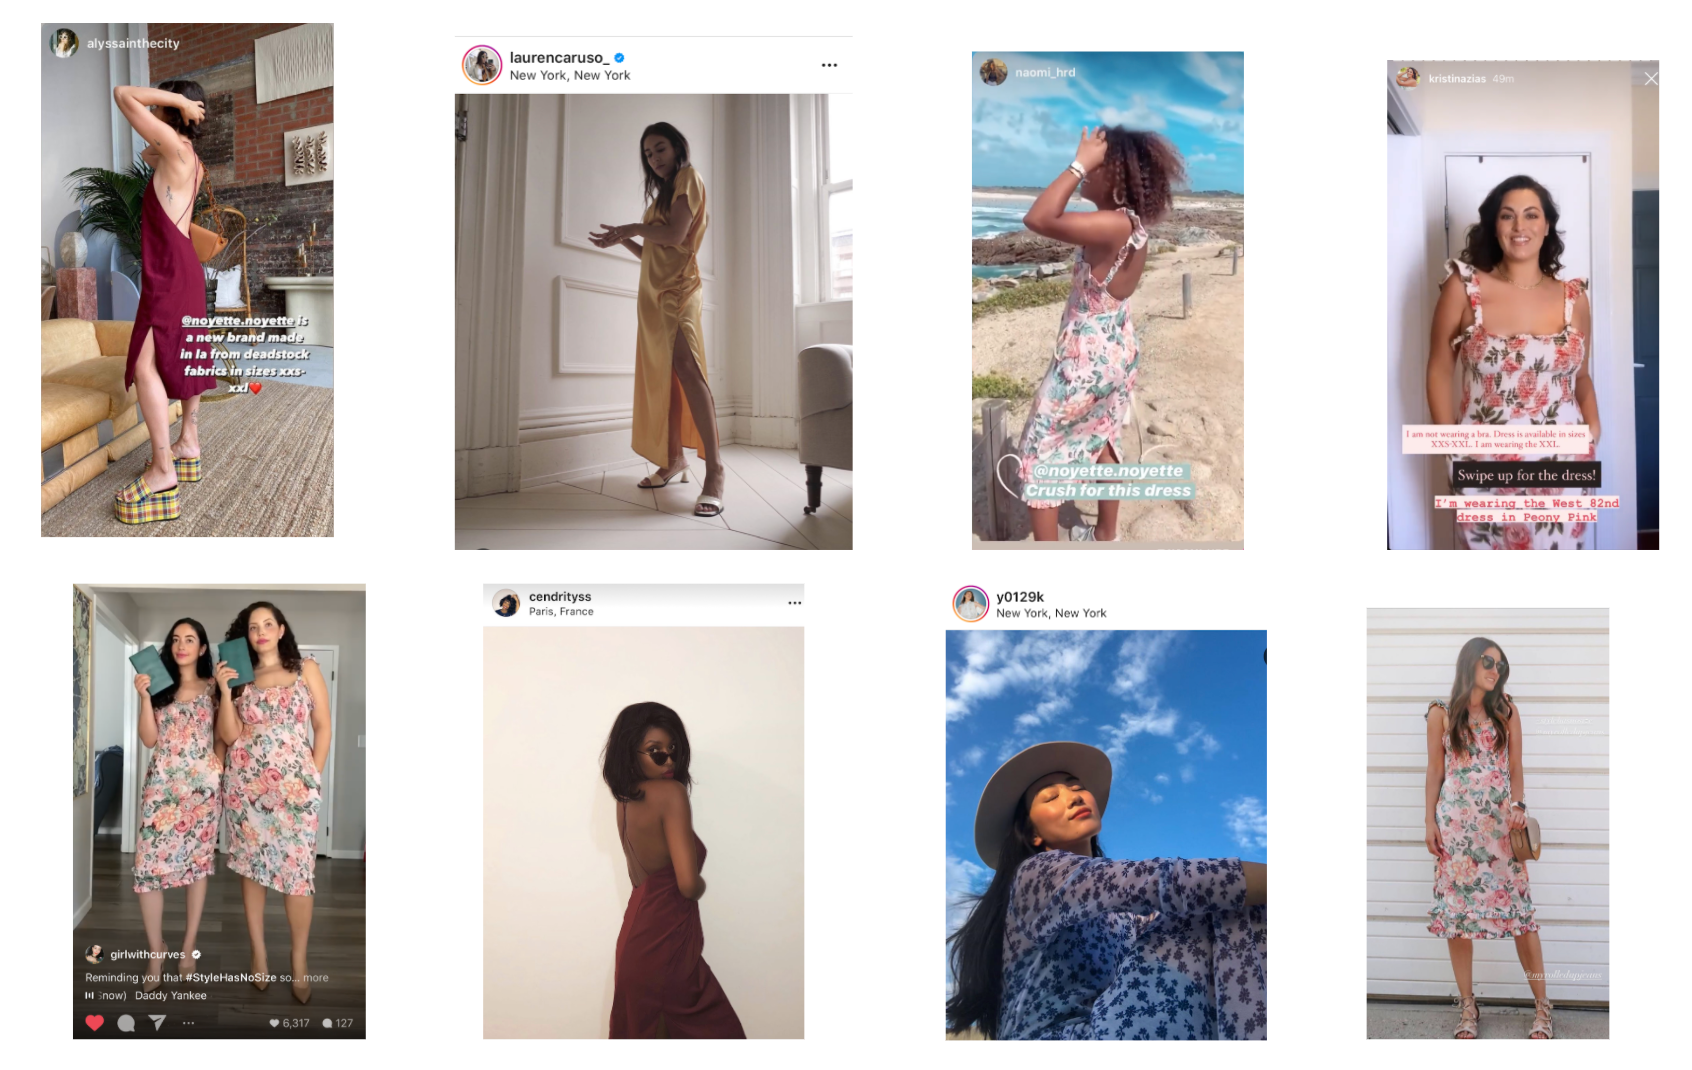 Noyette as seen on notable instagram influencers